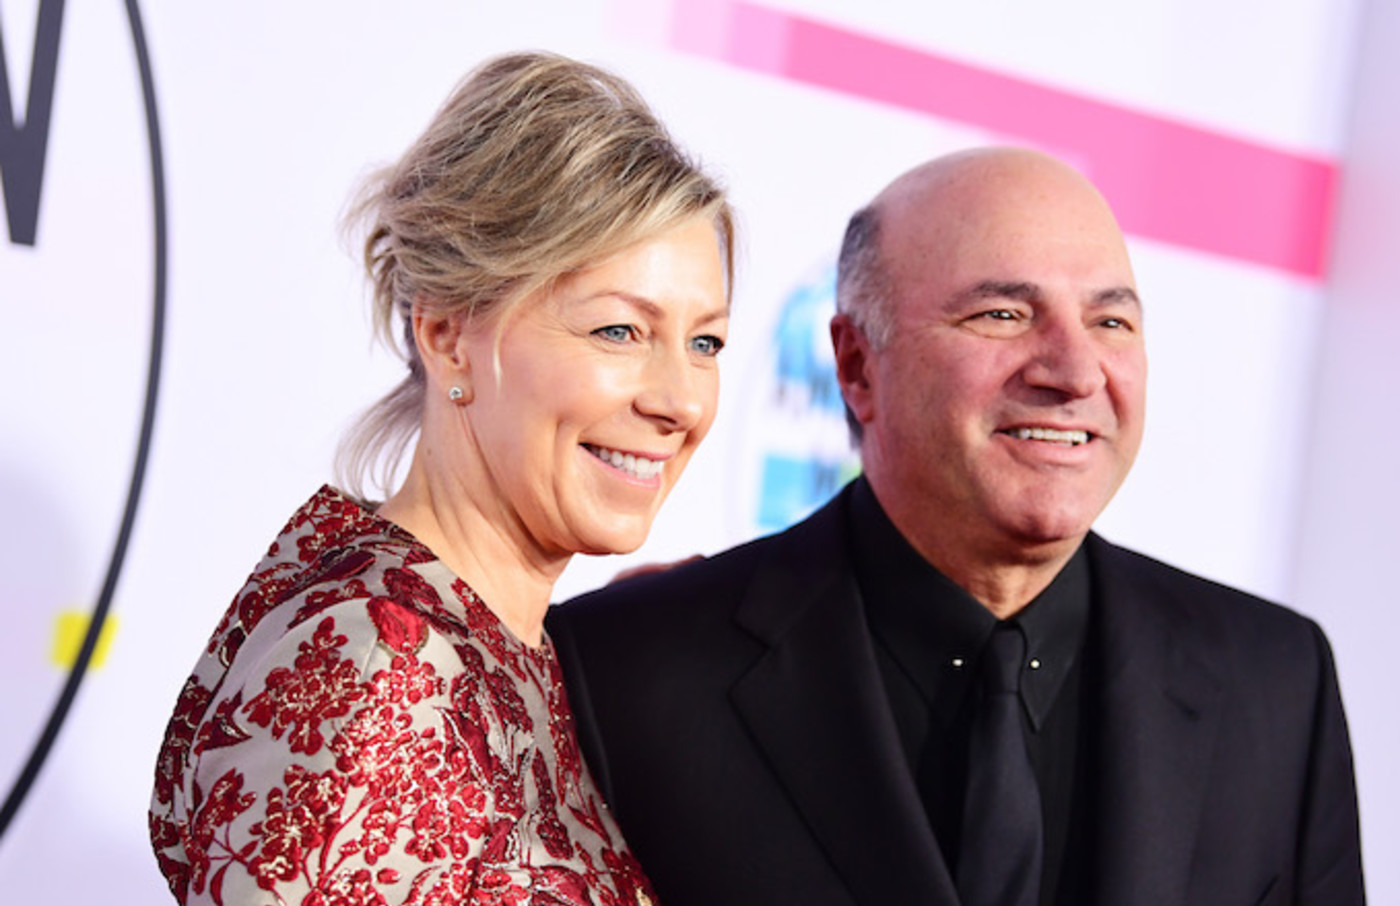 Linda O'Leary and Kevin O'Leary attend the 2017 American Music Awards.